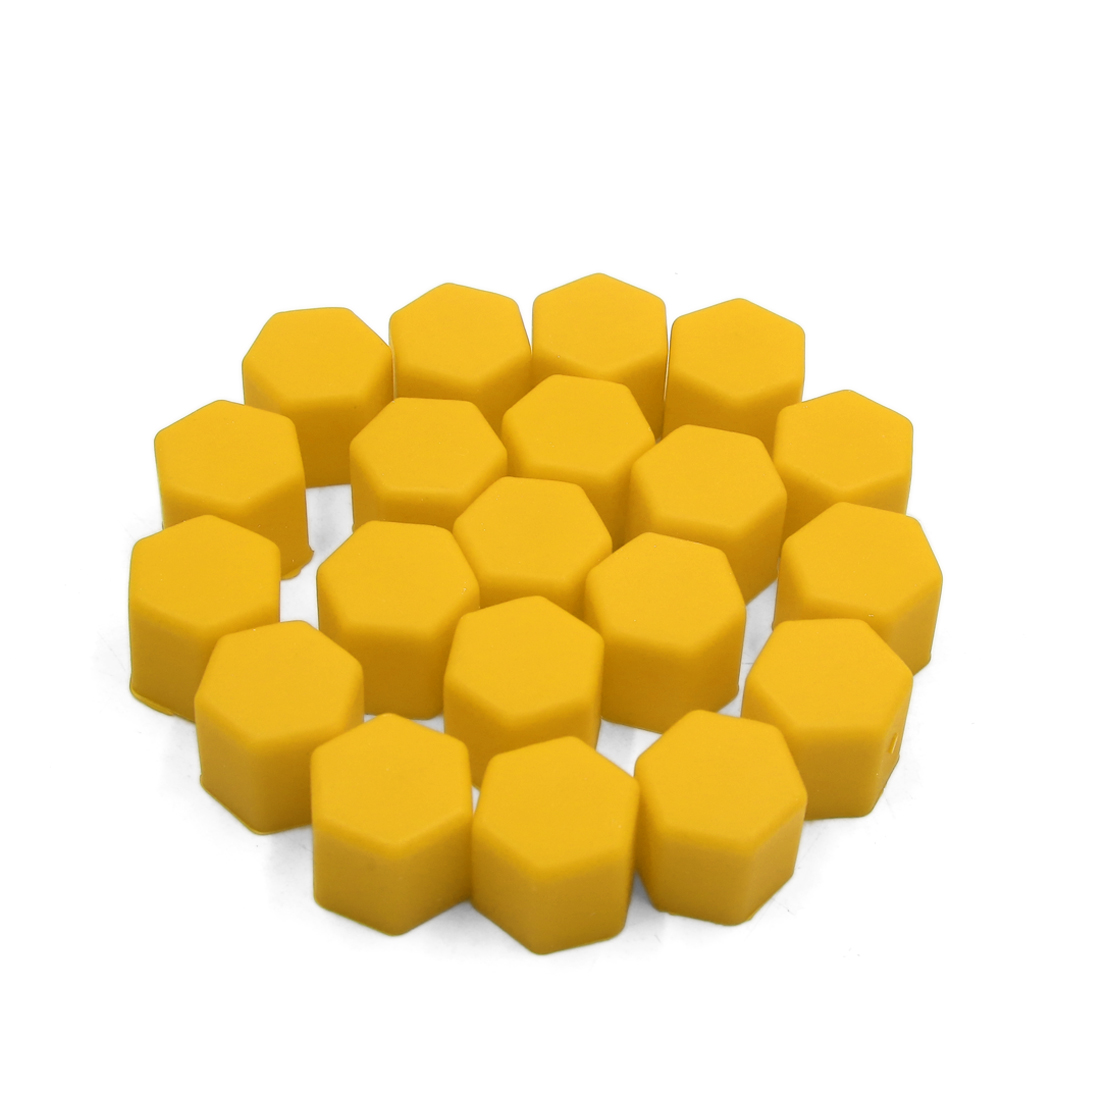 20pcs 17mm Yellow Silicone Car Tyre Wheel Hub Screw Cap Dust Cover Protector